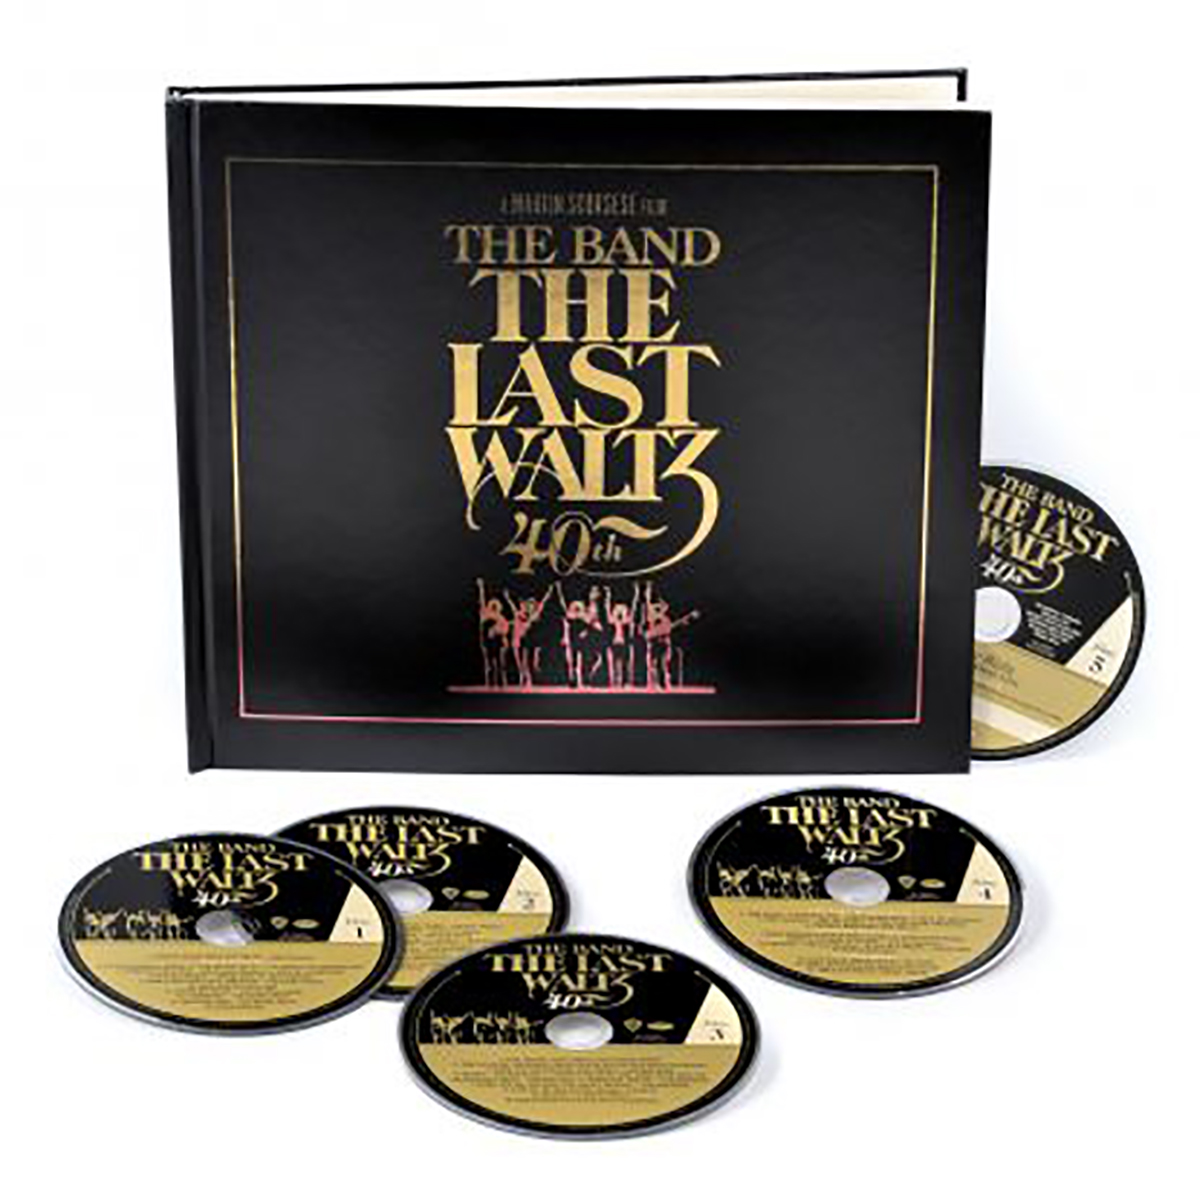 The Band The Last Waltz - 40Th Anniversary Deluxe Edition